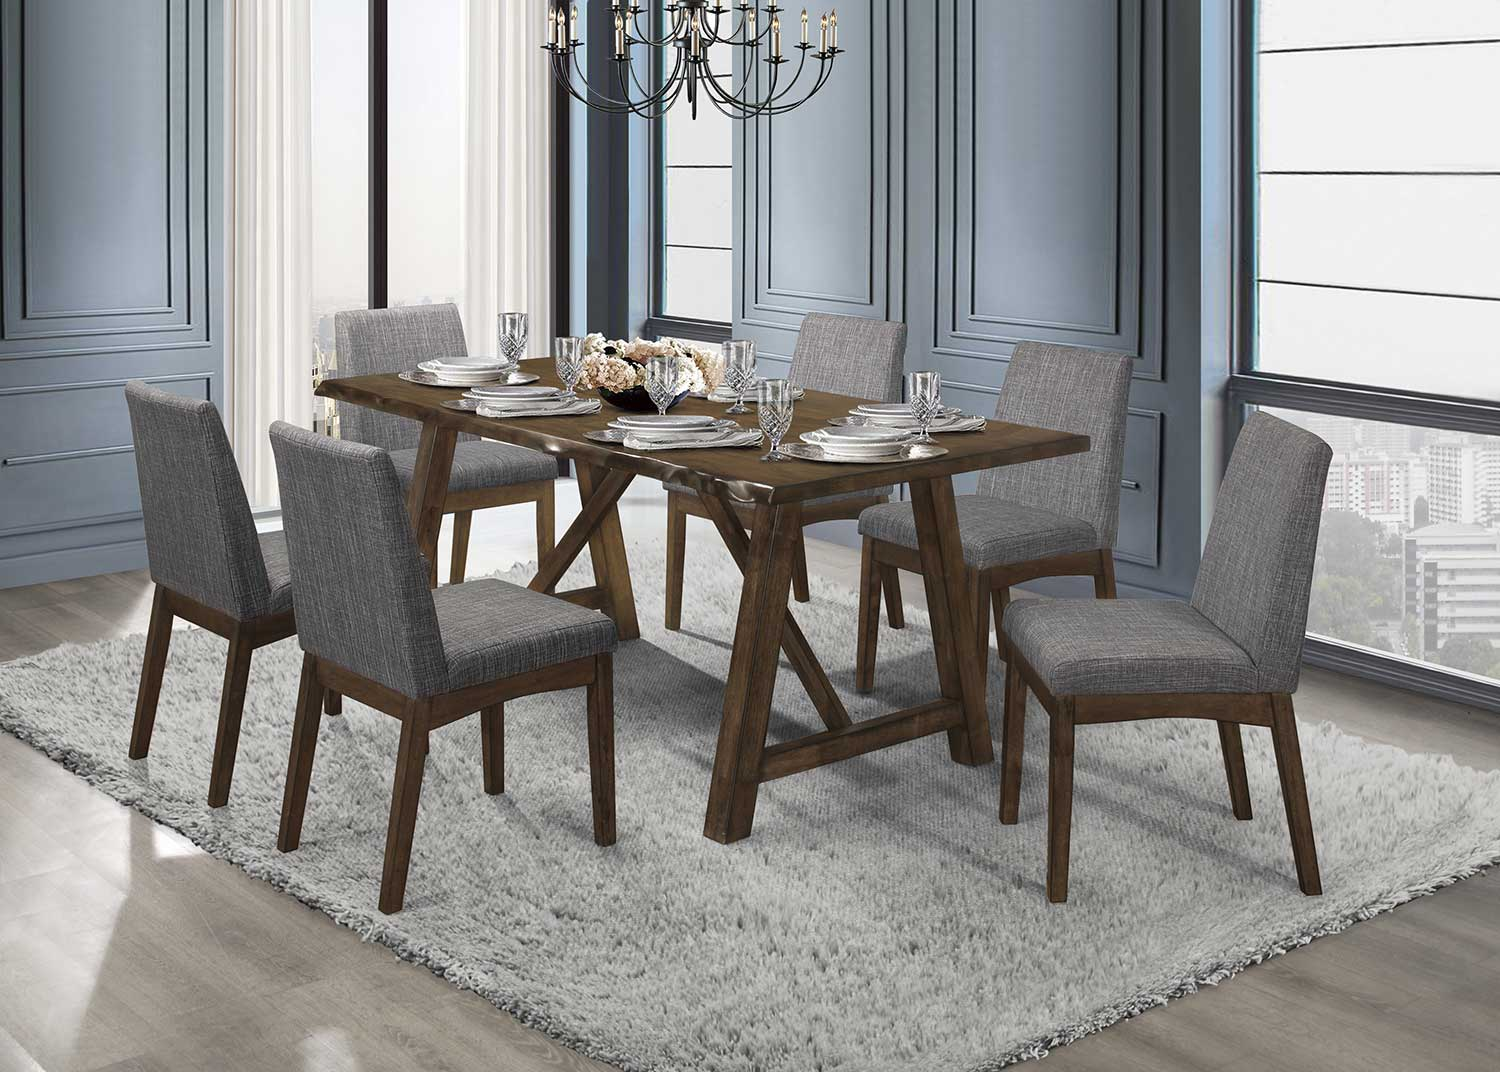 Homelegance Whittaker Dining Set - Warm Brown and Black